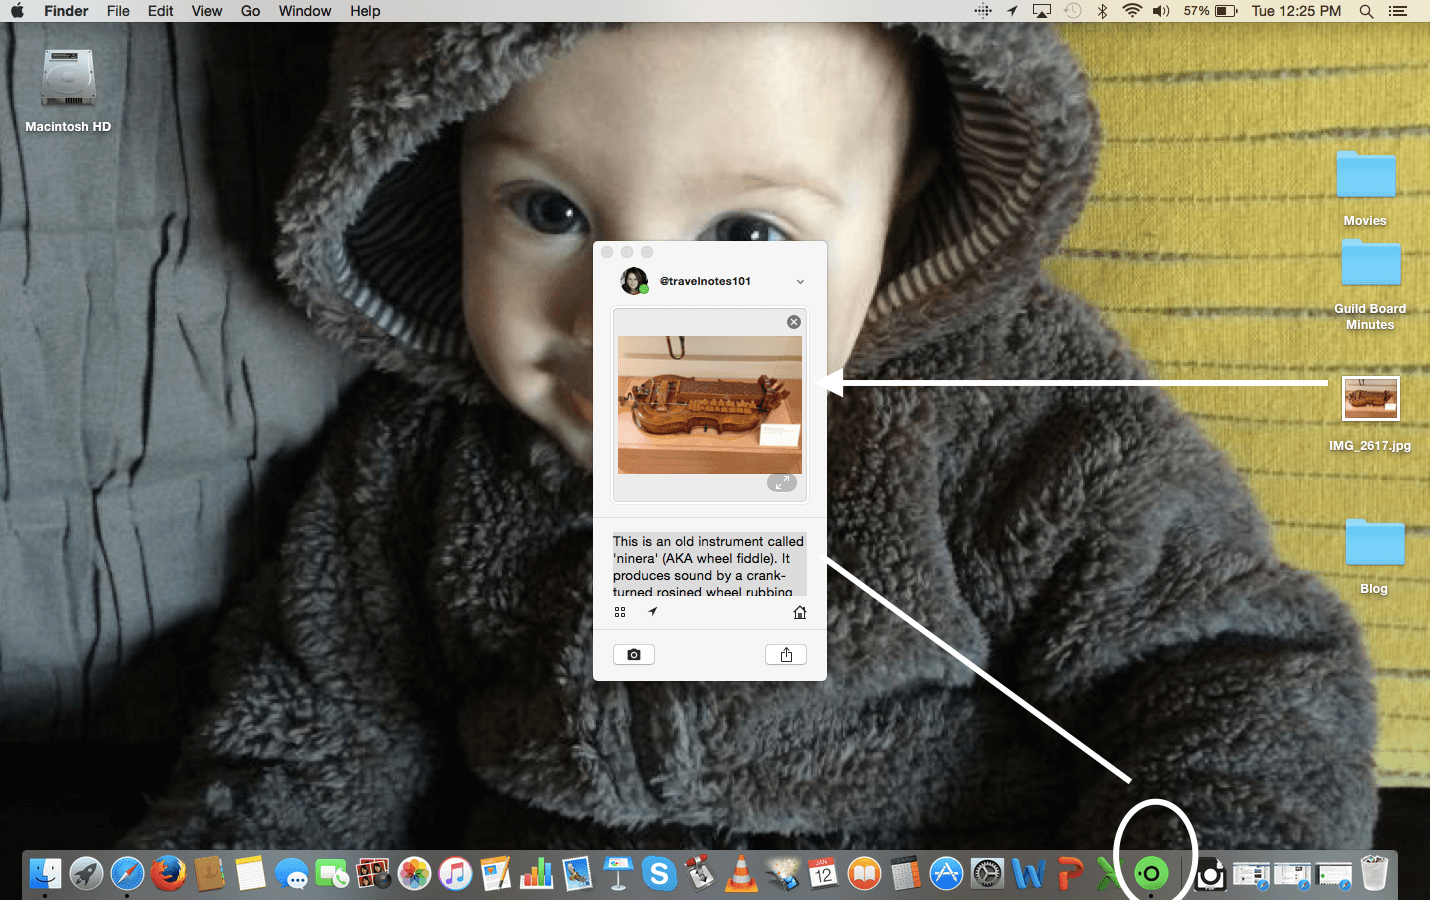 How to post on Instagram from a Mac